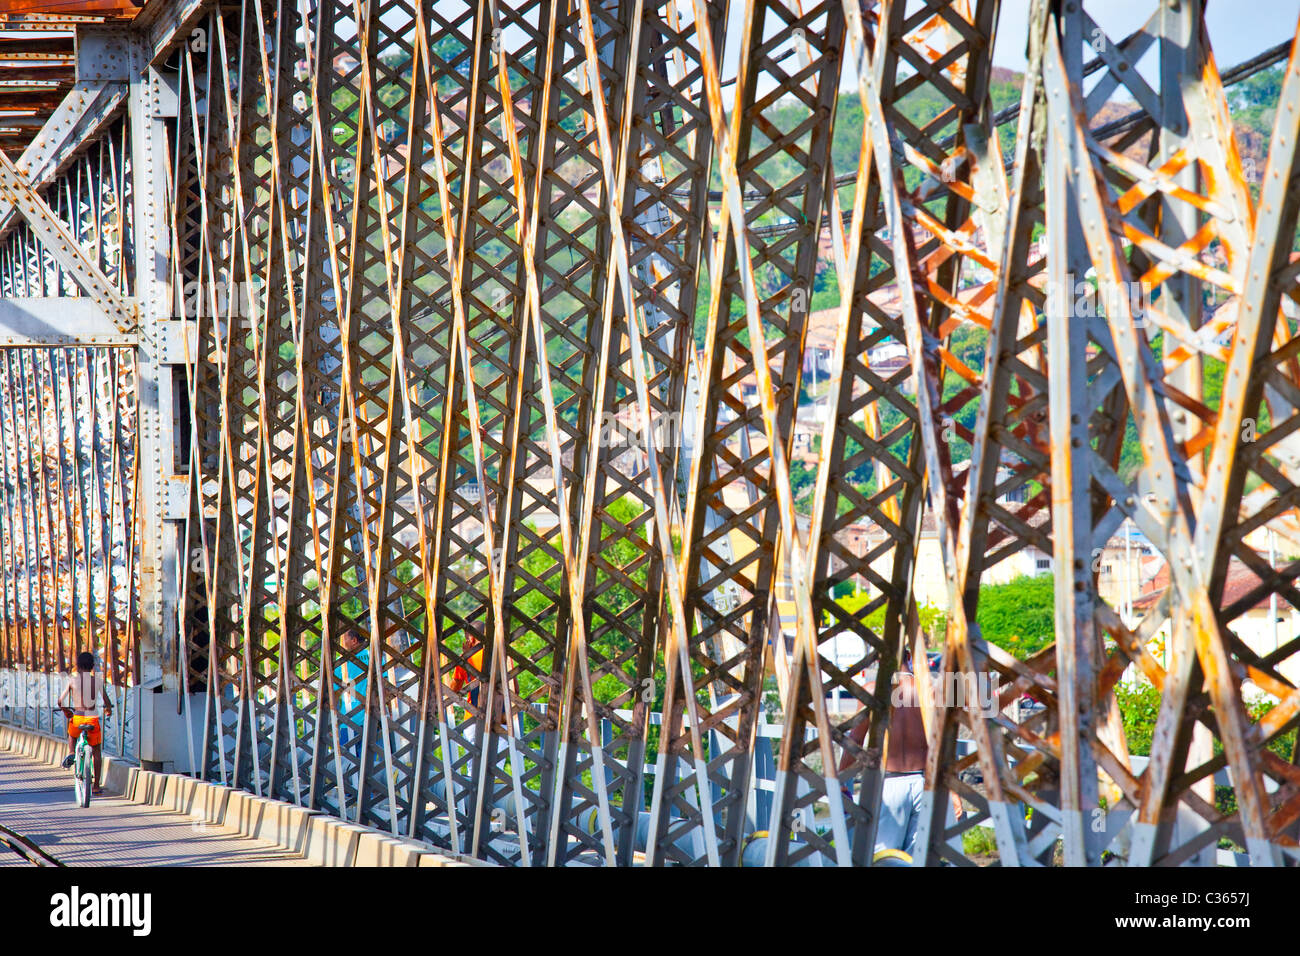 Railway bridge between Sao Felix and Cachoeira, near Salvador, Brazil - Stock Image